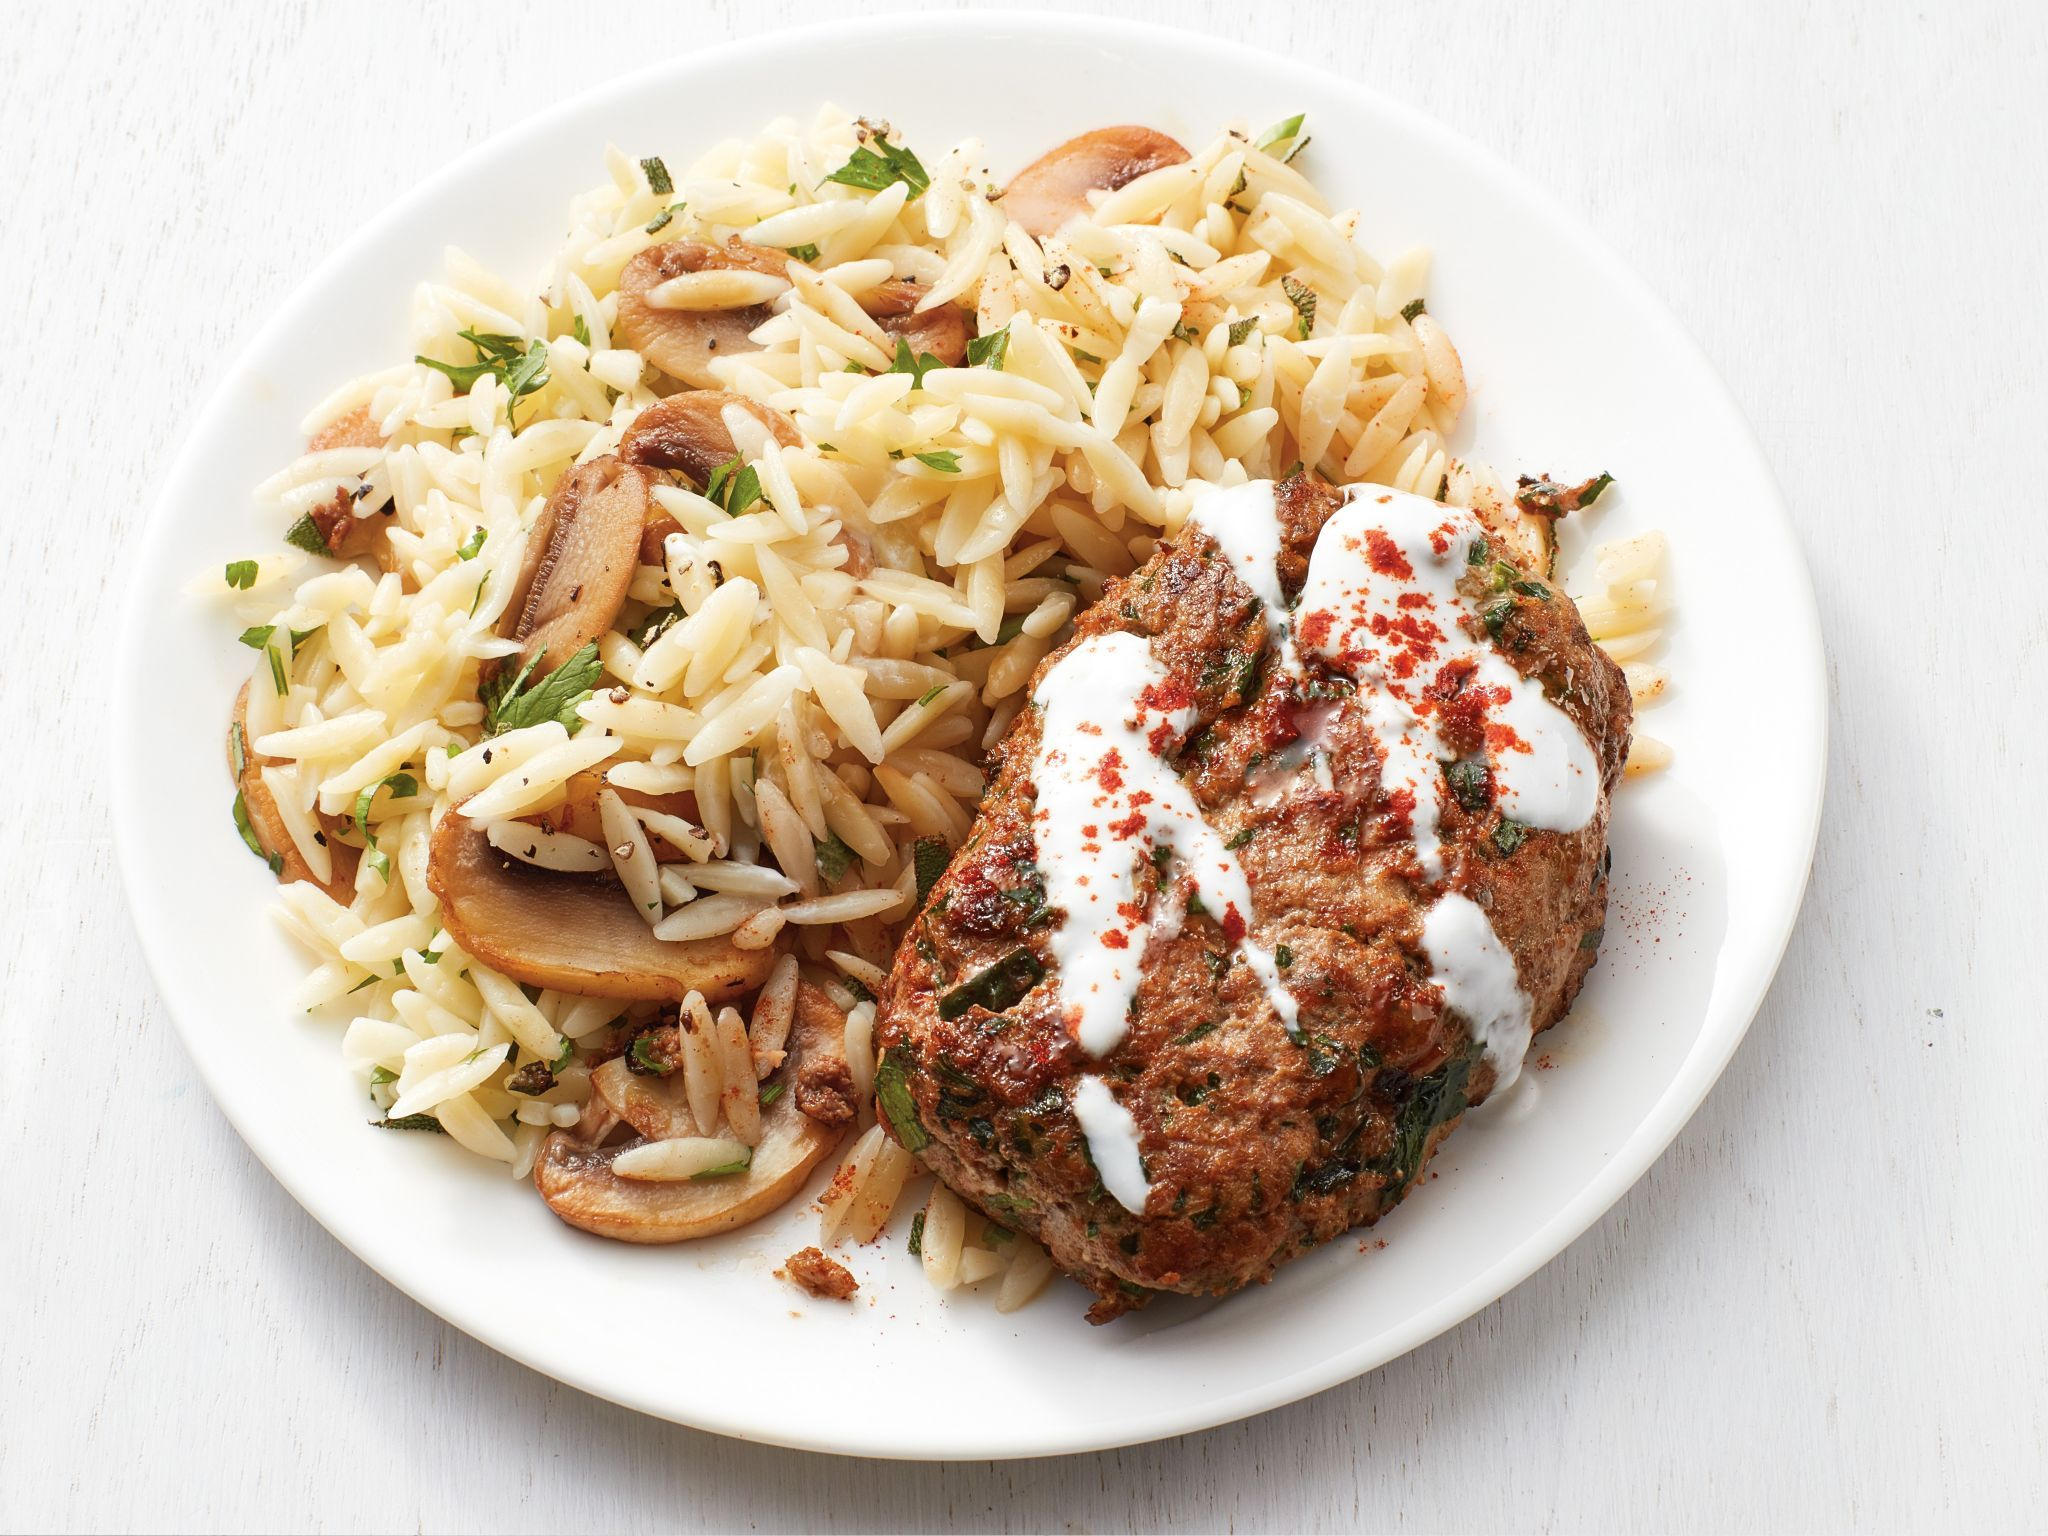 Mini meatloaves with mushroom herb orzo recipe orzo recipes mini meatloaves with mushroom herb orzo orzo recipeslamb recipesmeat recipesdinner recipesdinner ideashealthy recipesfood network forumfinder Images